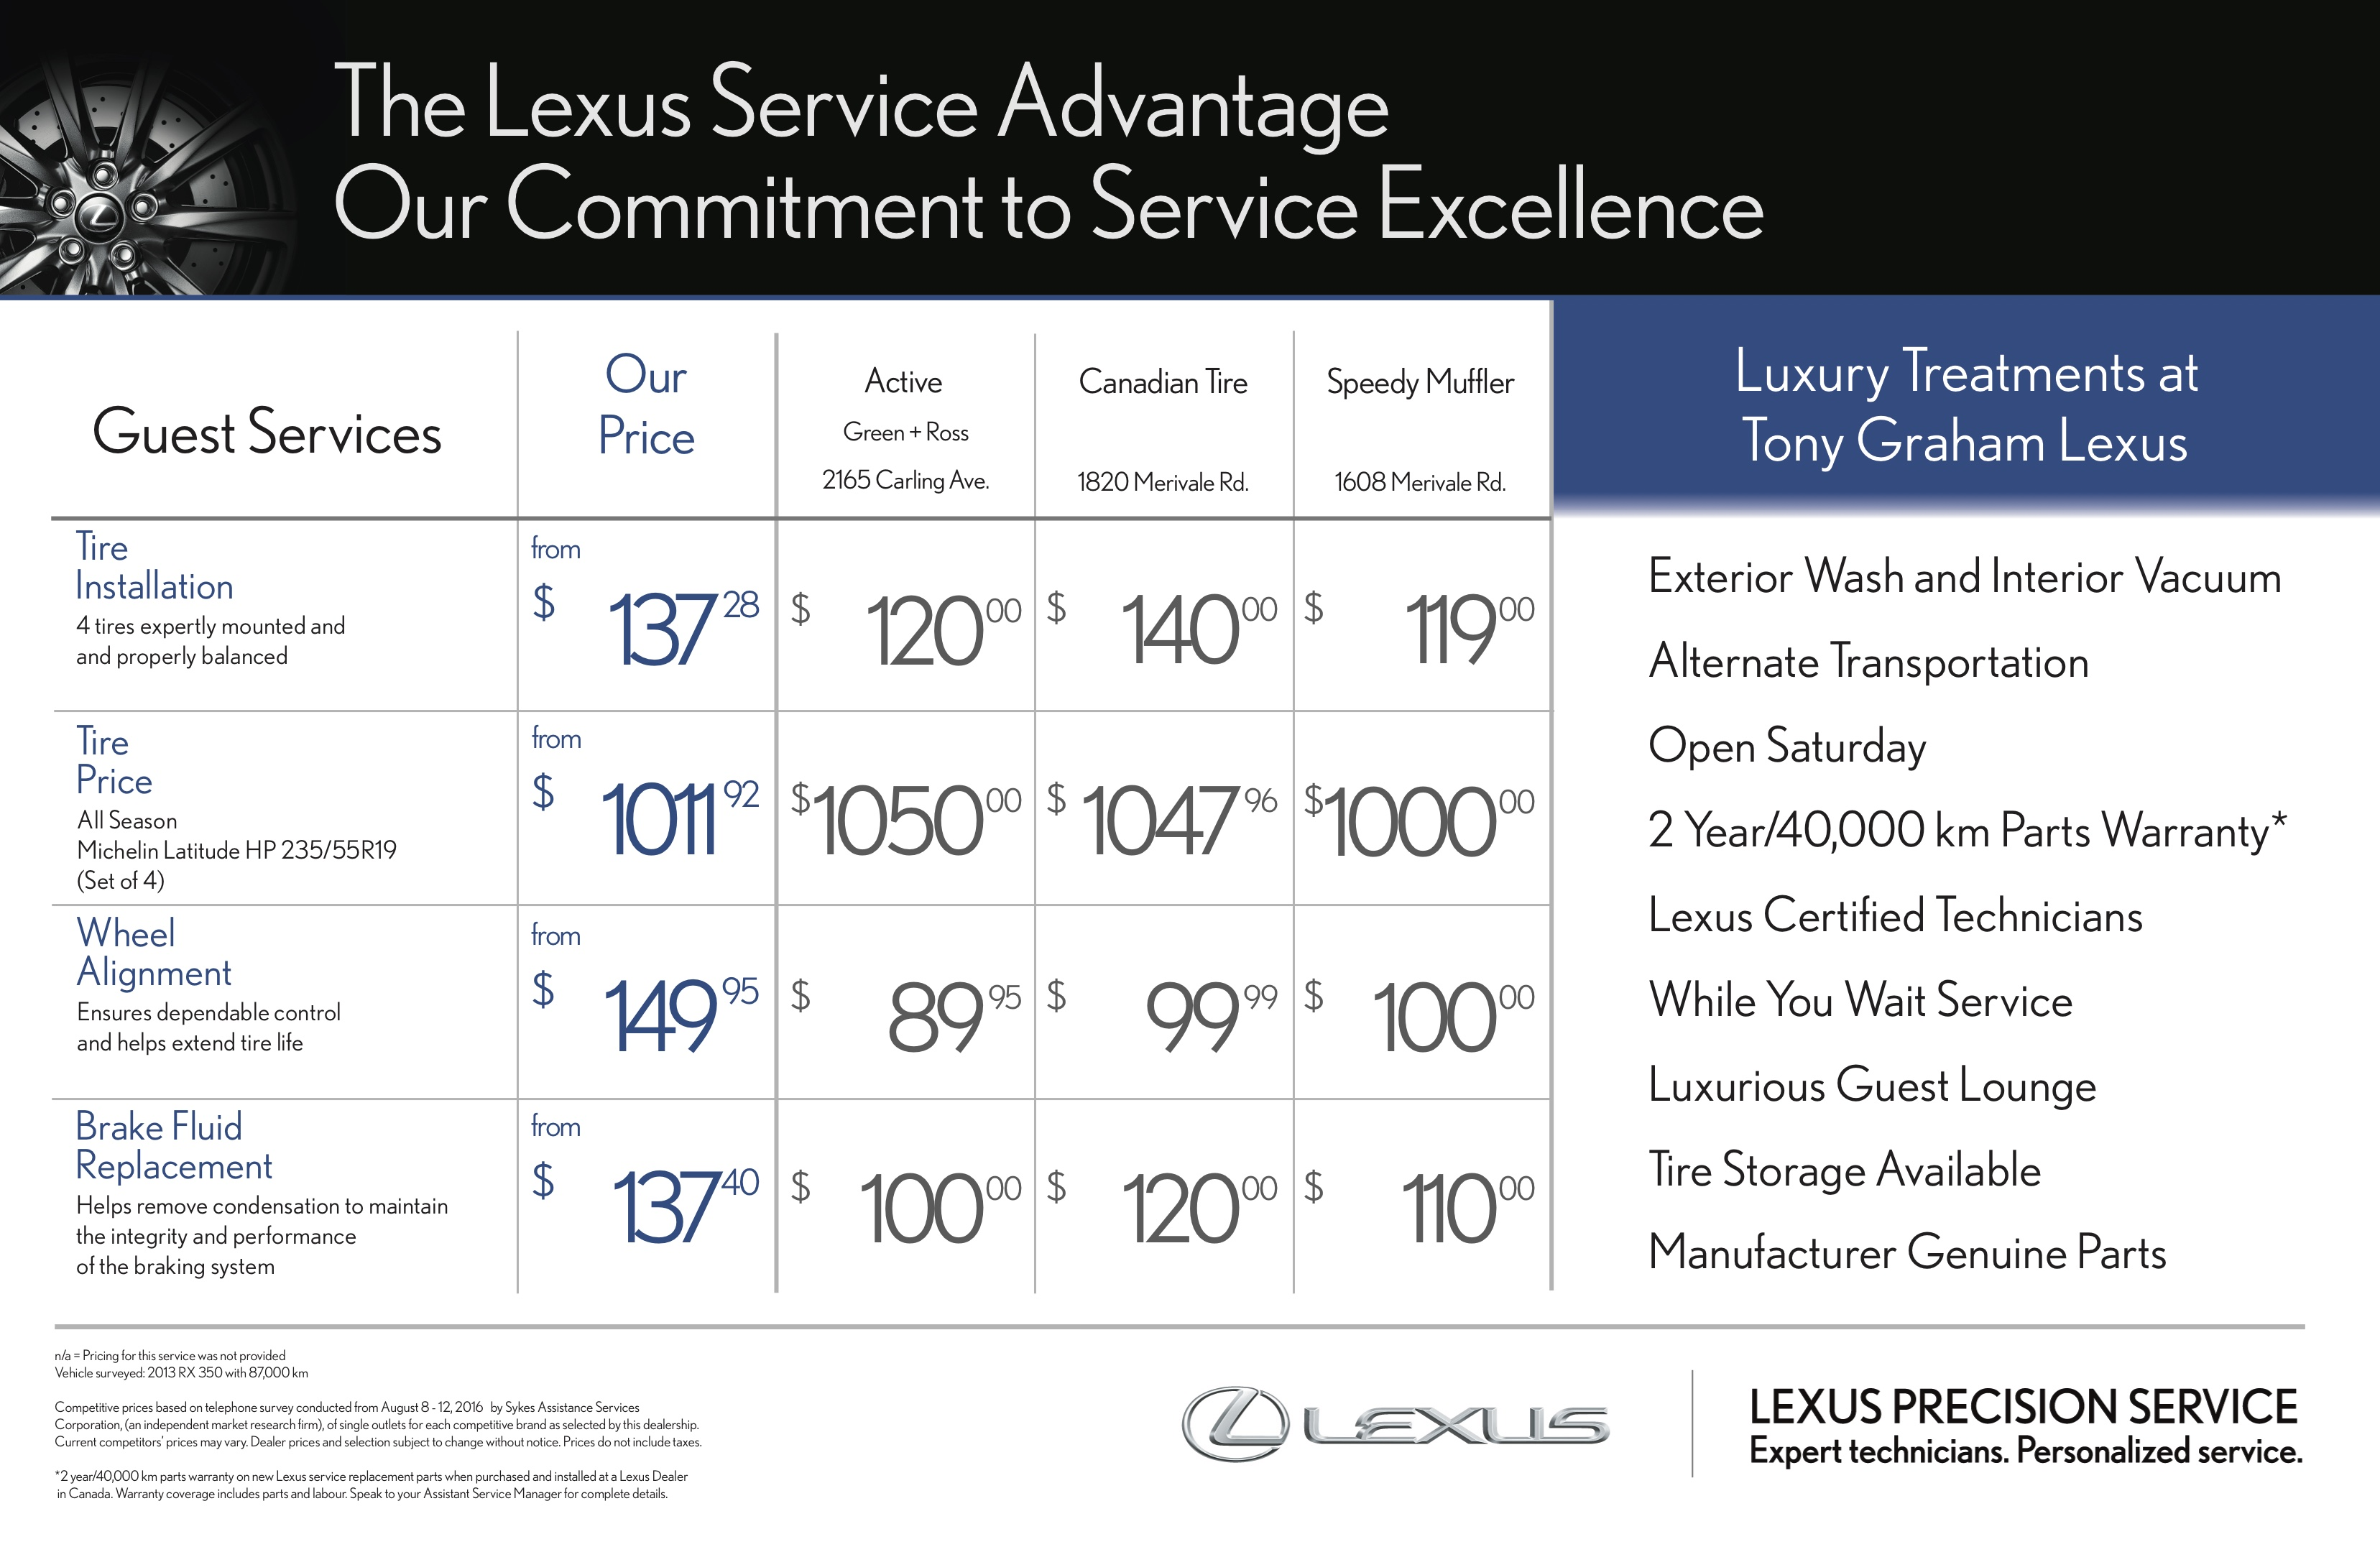 2016 Tony Graham Lexus Service Advantage